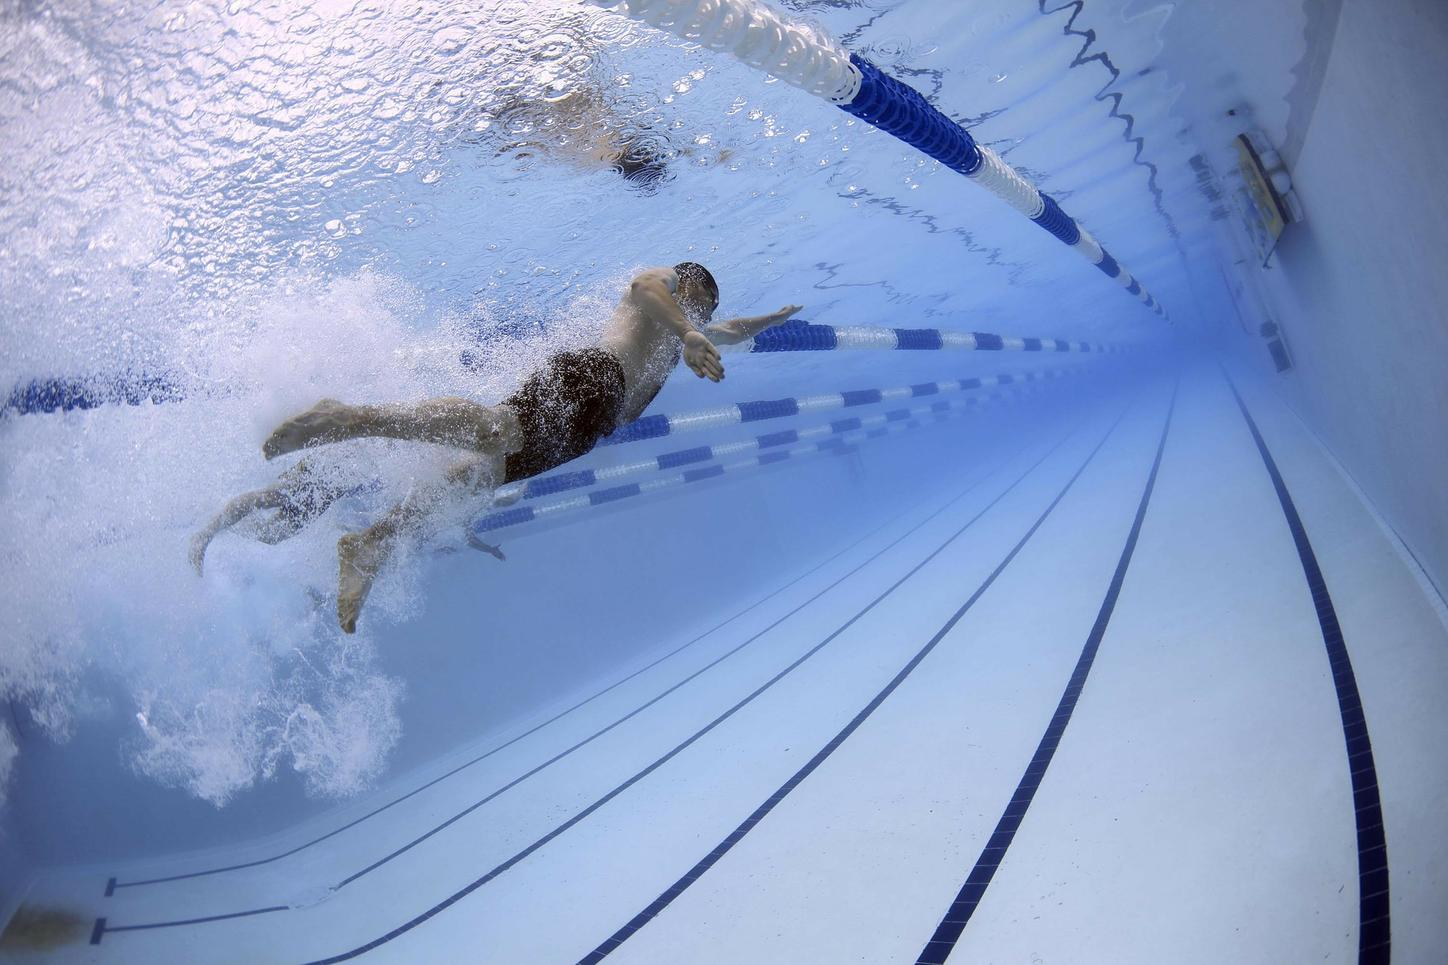 The picture shows swimmers in a swimming pool.